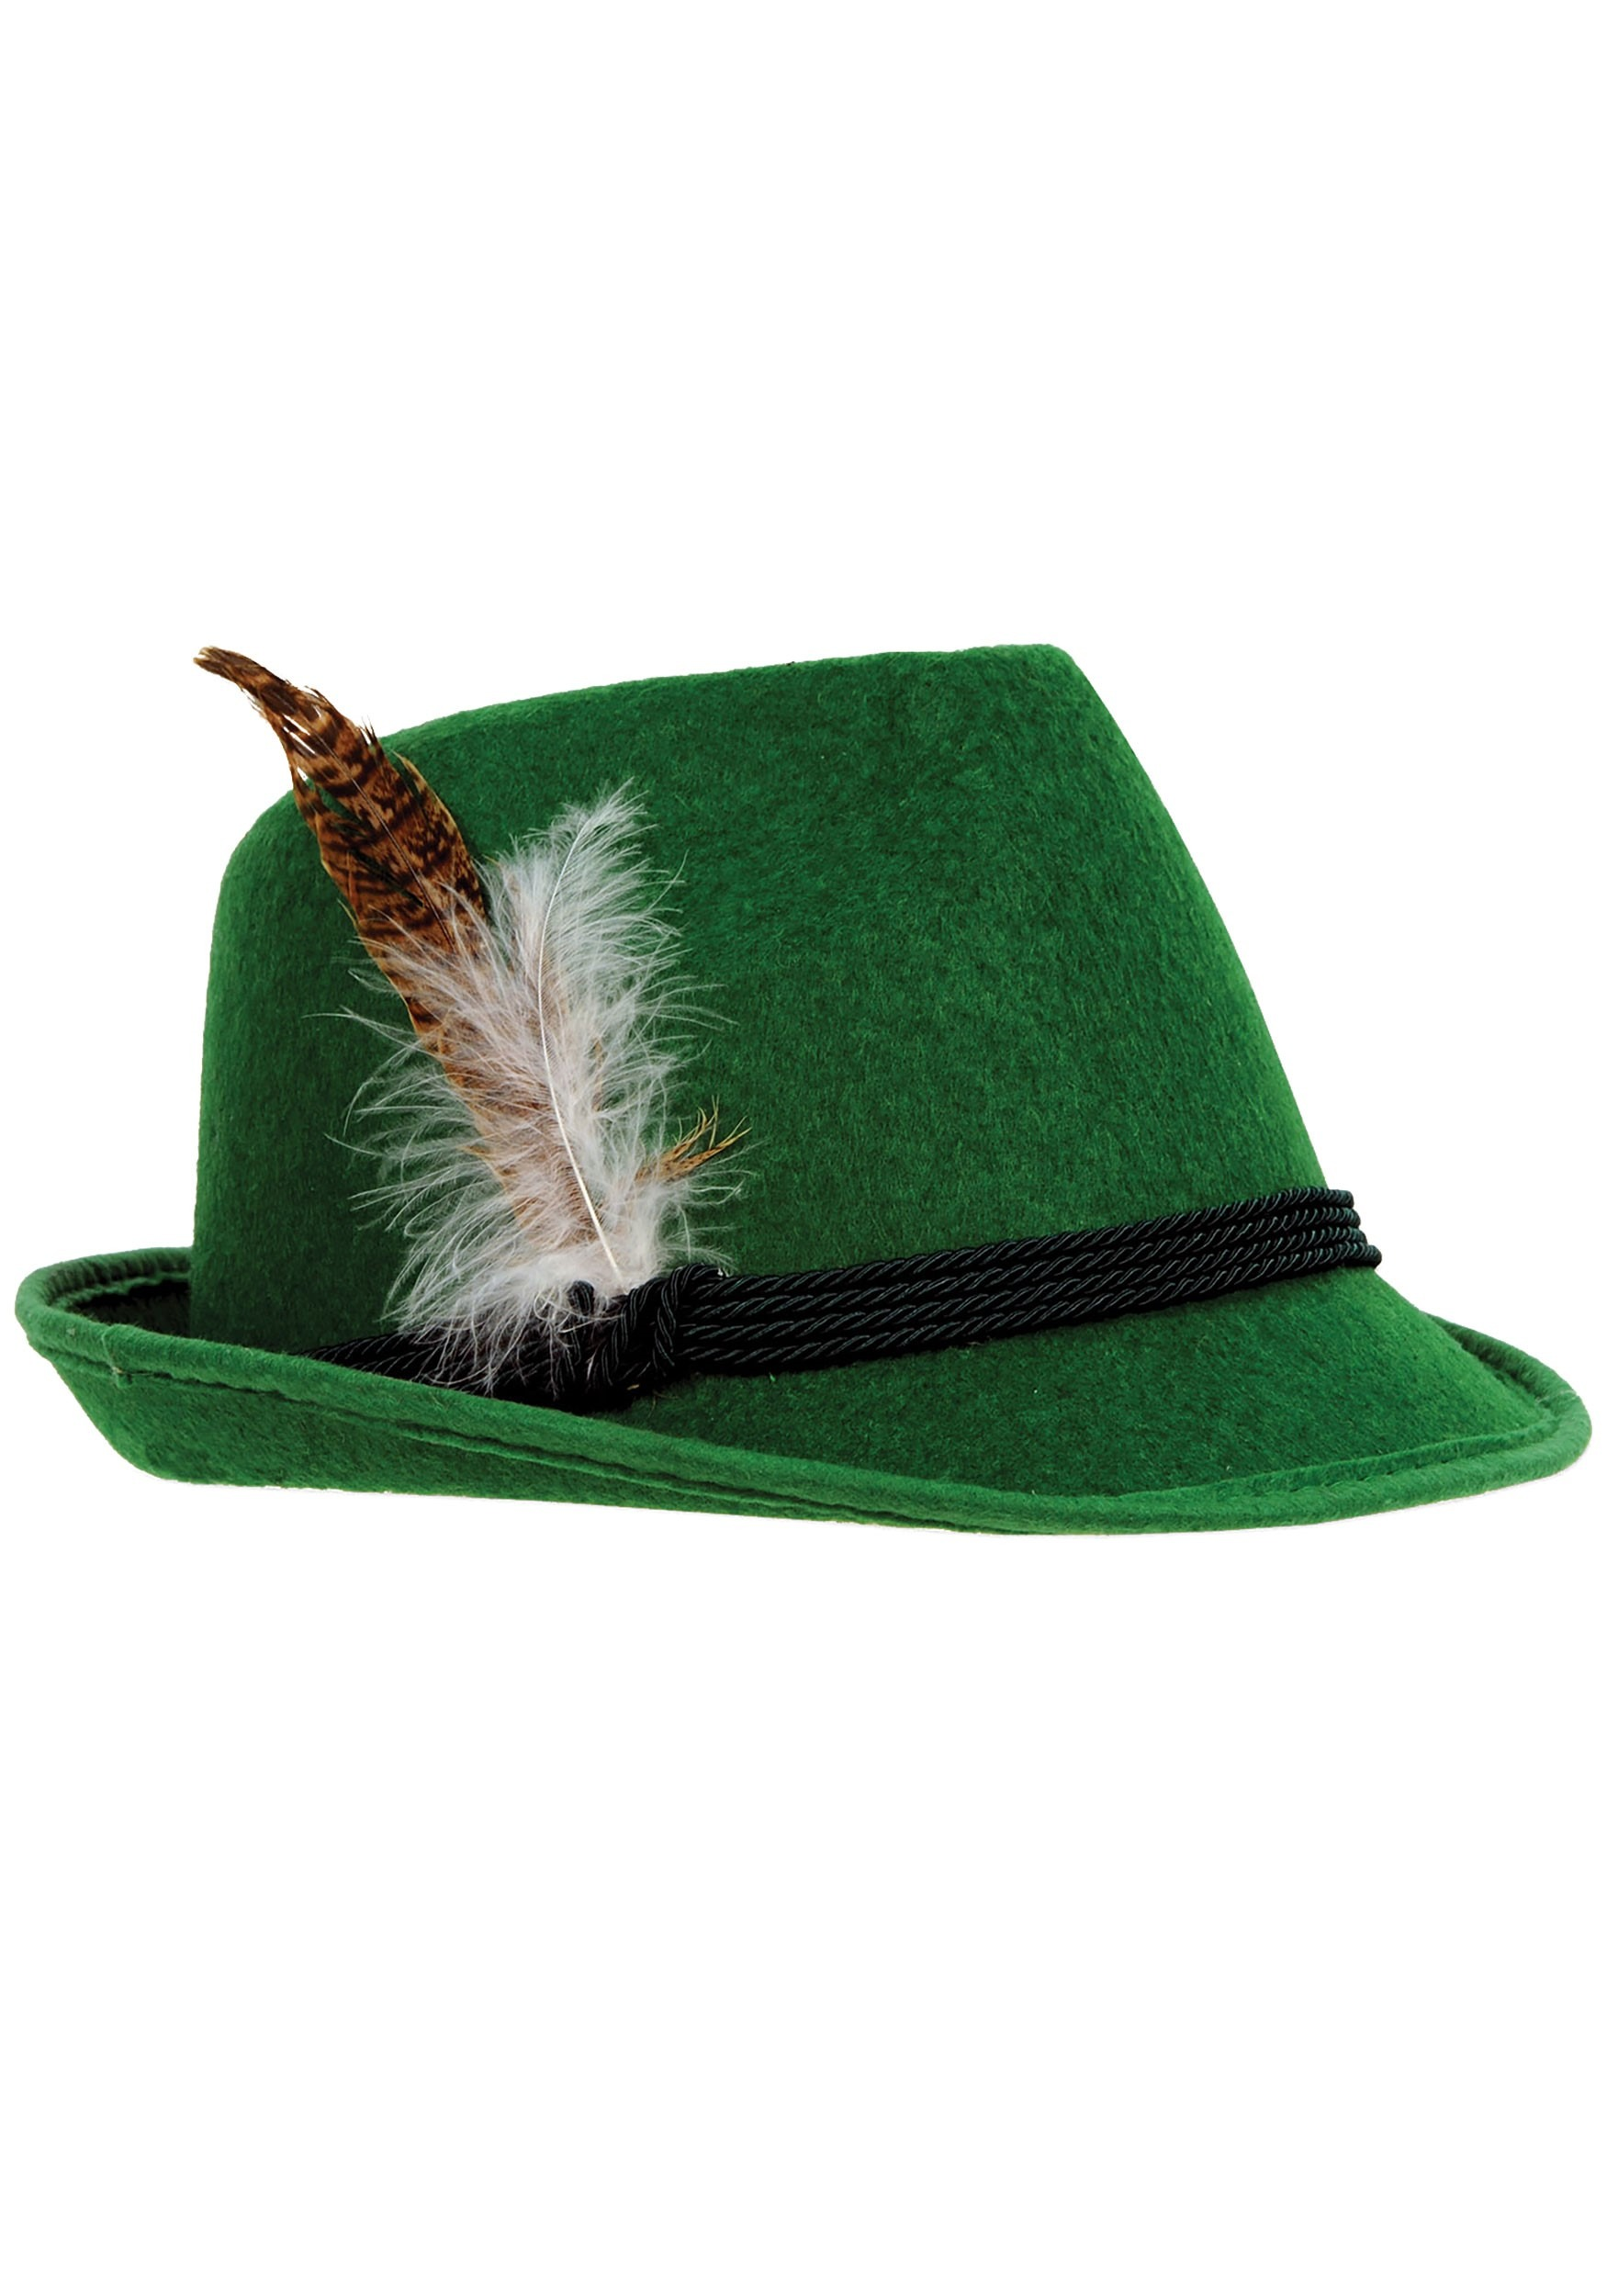 Men's_Deluxe_Green_German_Hat